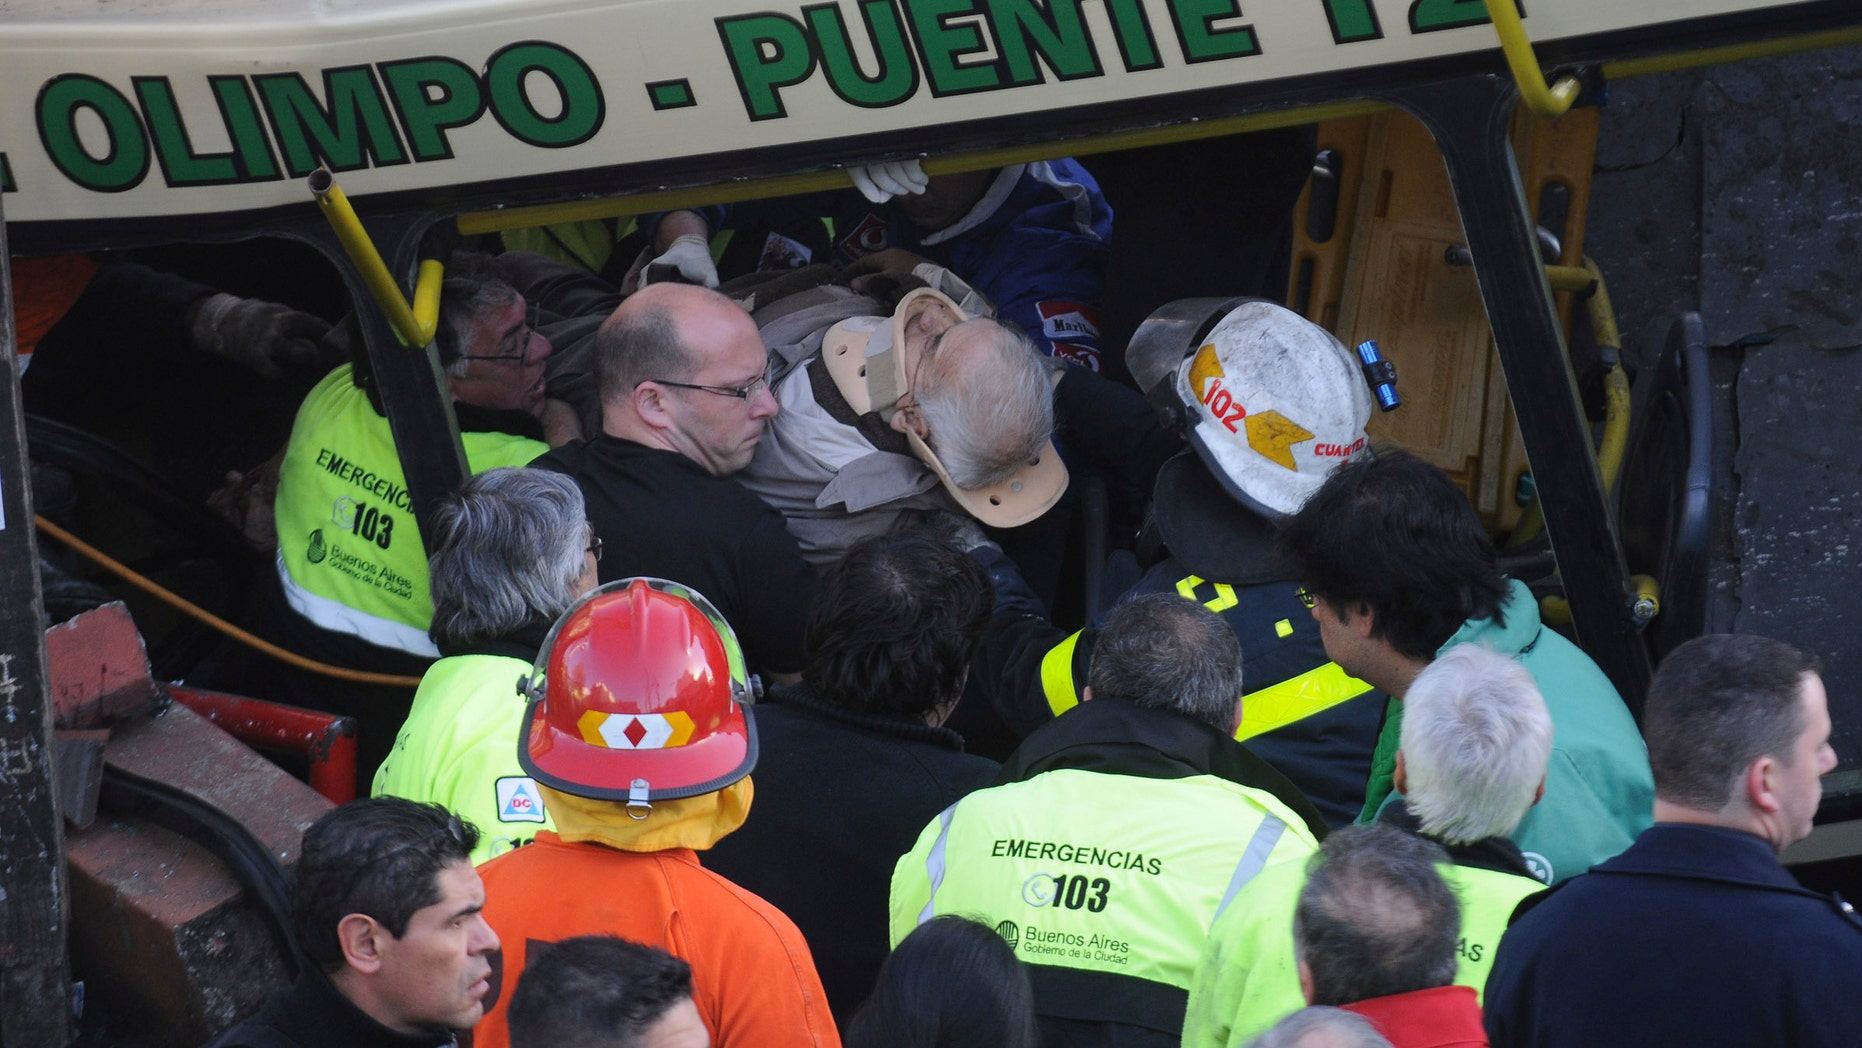 A wounded passenger is carried out a train after it crashed in Buenos Aires, Argentina, Tuesday, Sept. 13, 2011. At least seven people were killed and at least 162 injured in a rush-hour crash Tuesday involving two passenger trains and a bus whose driver drove around barriers in an attempt to beat them across the tracks, Argentine authorities said.